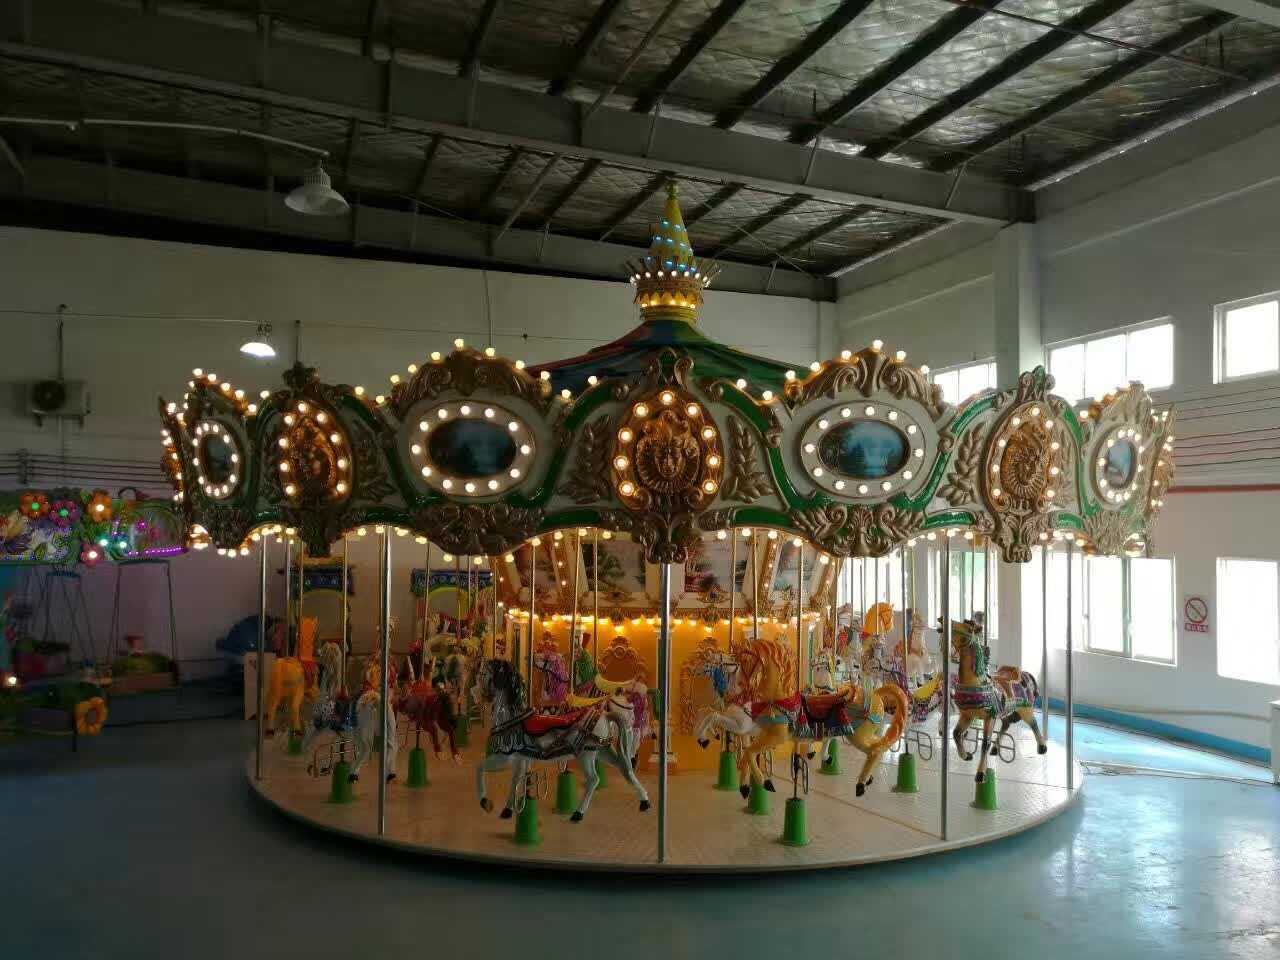 LETIAN New mini carousel ride for sale design fairground-4